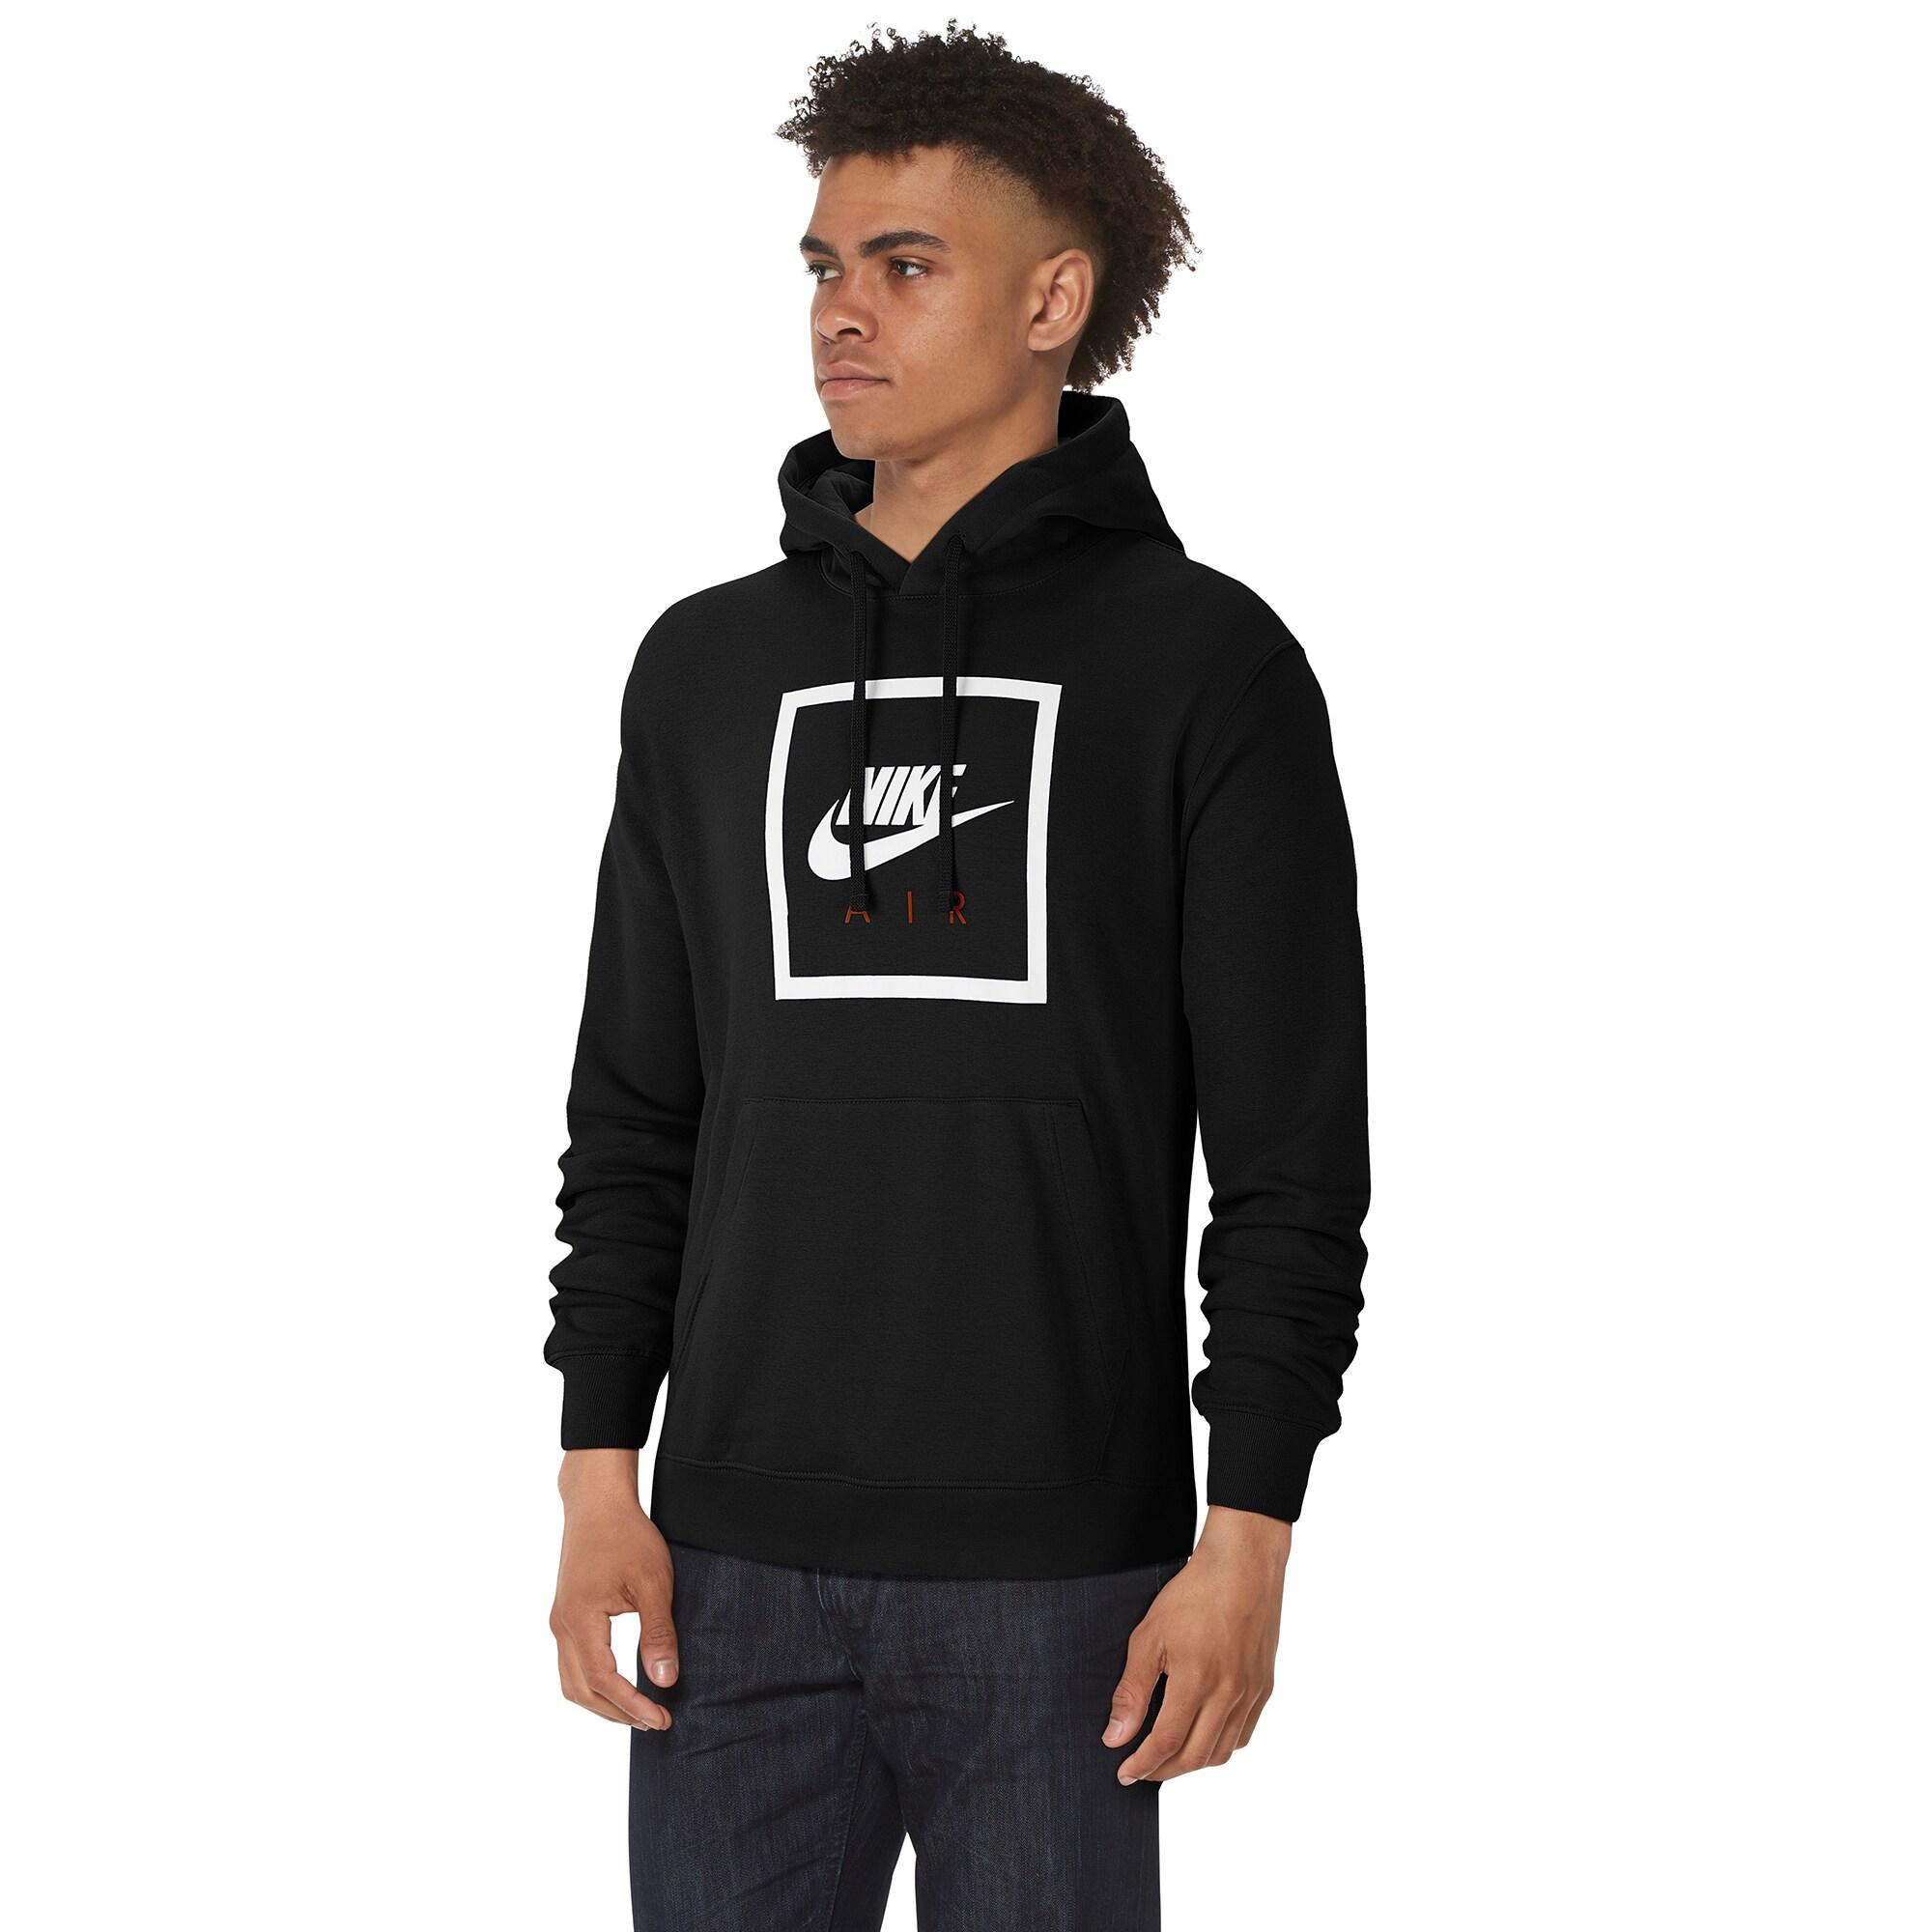 Nike Cotton Air Box Pullover Hoodie in